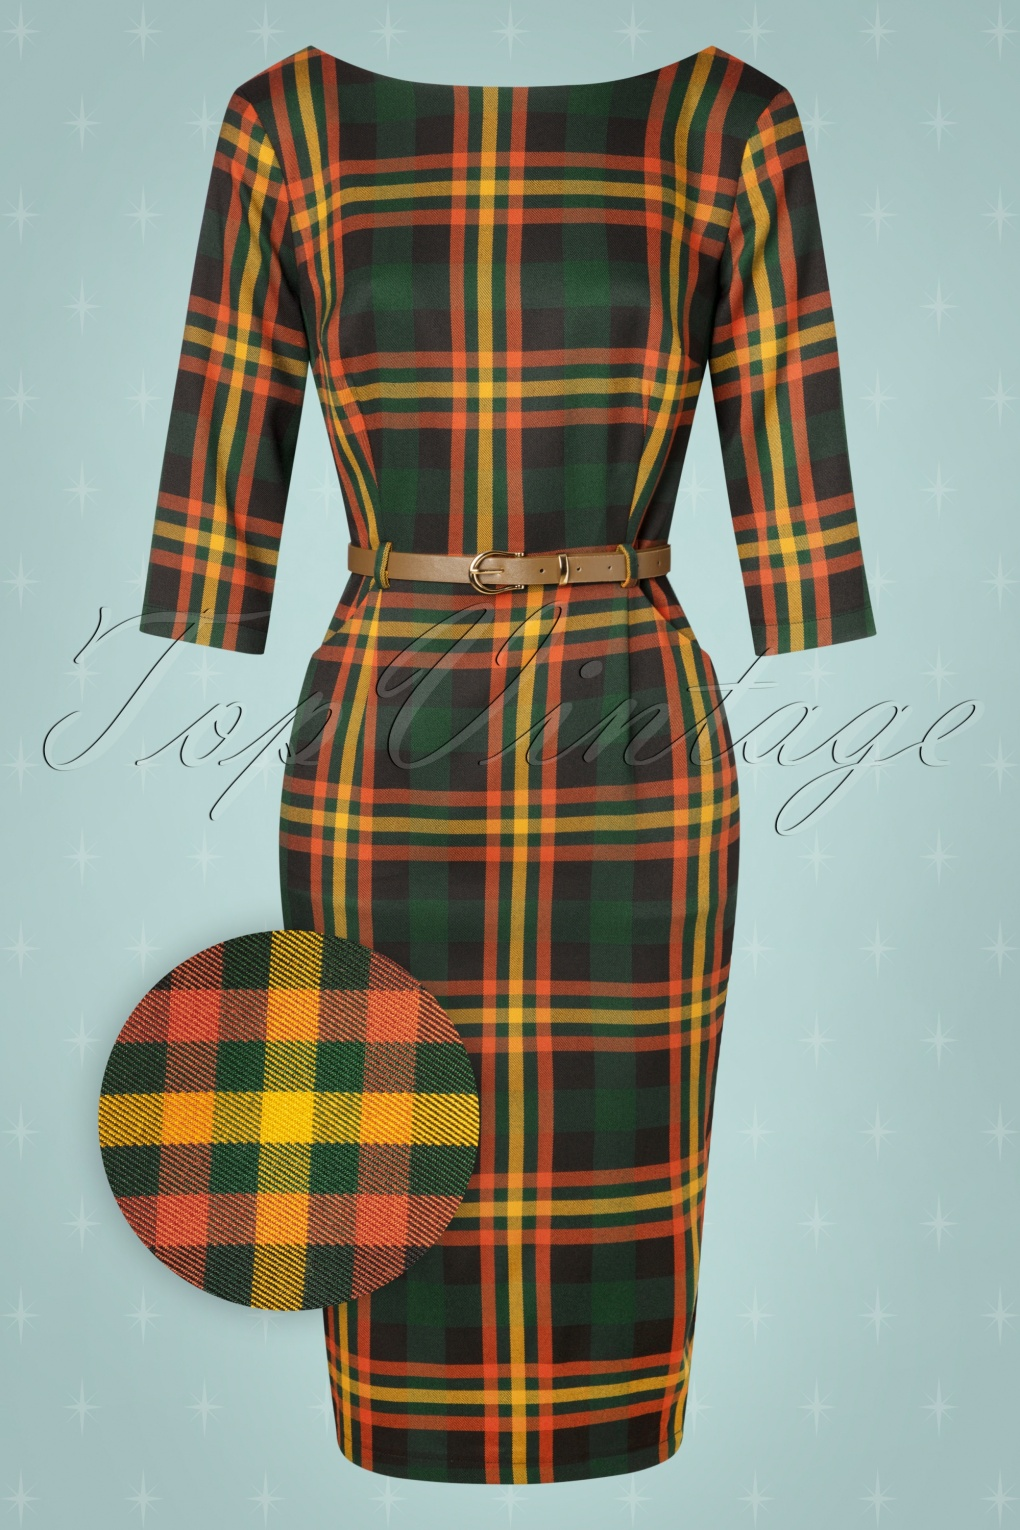 60s Mod Clothing Outfit Ideas 50s Adeline Valley Check Pencil Dress in Multi £62.66 AT vintagedancer.com